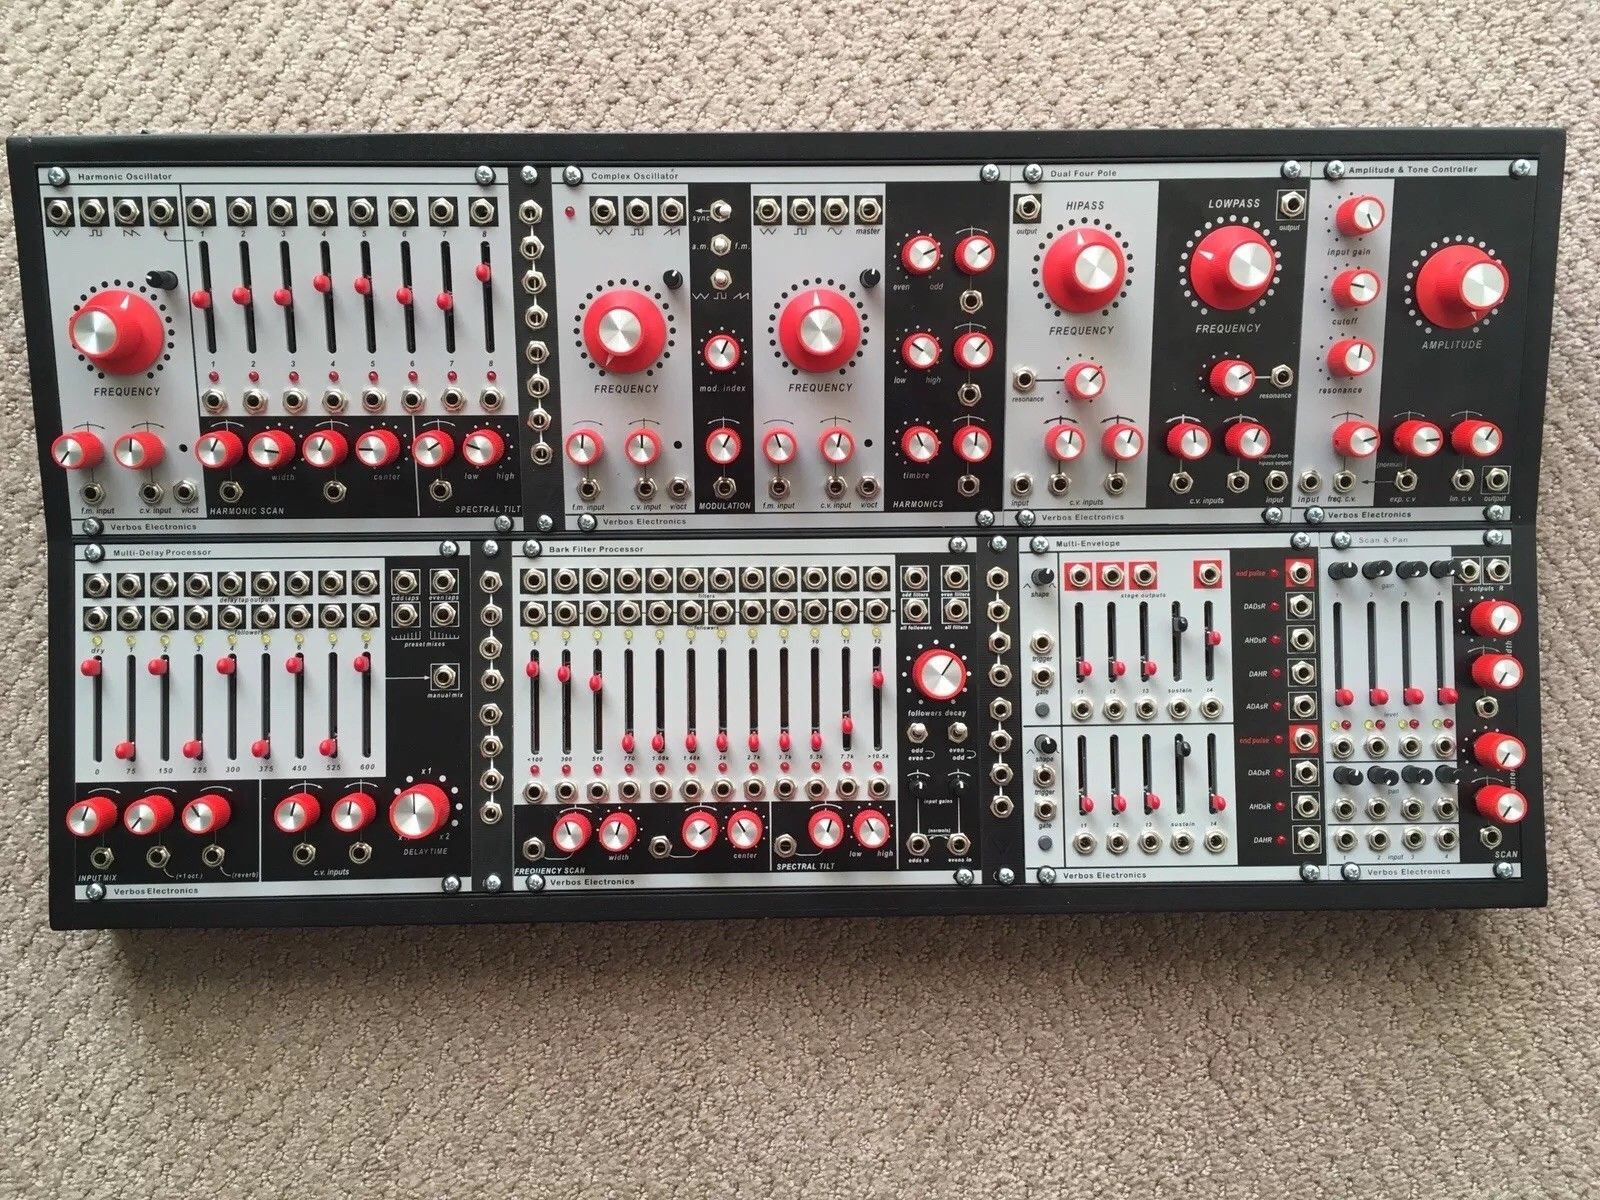 matrixsynth verbos electronics eurorack modular synthesizer system. Black Bedroom Furniture Sets. Home Design Ideas